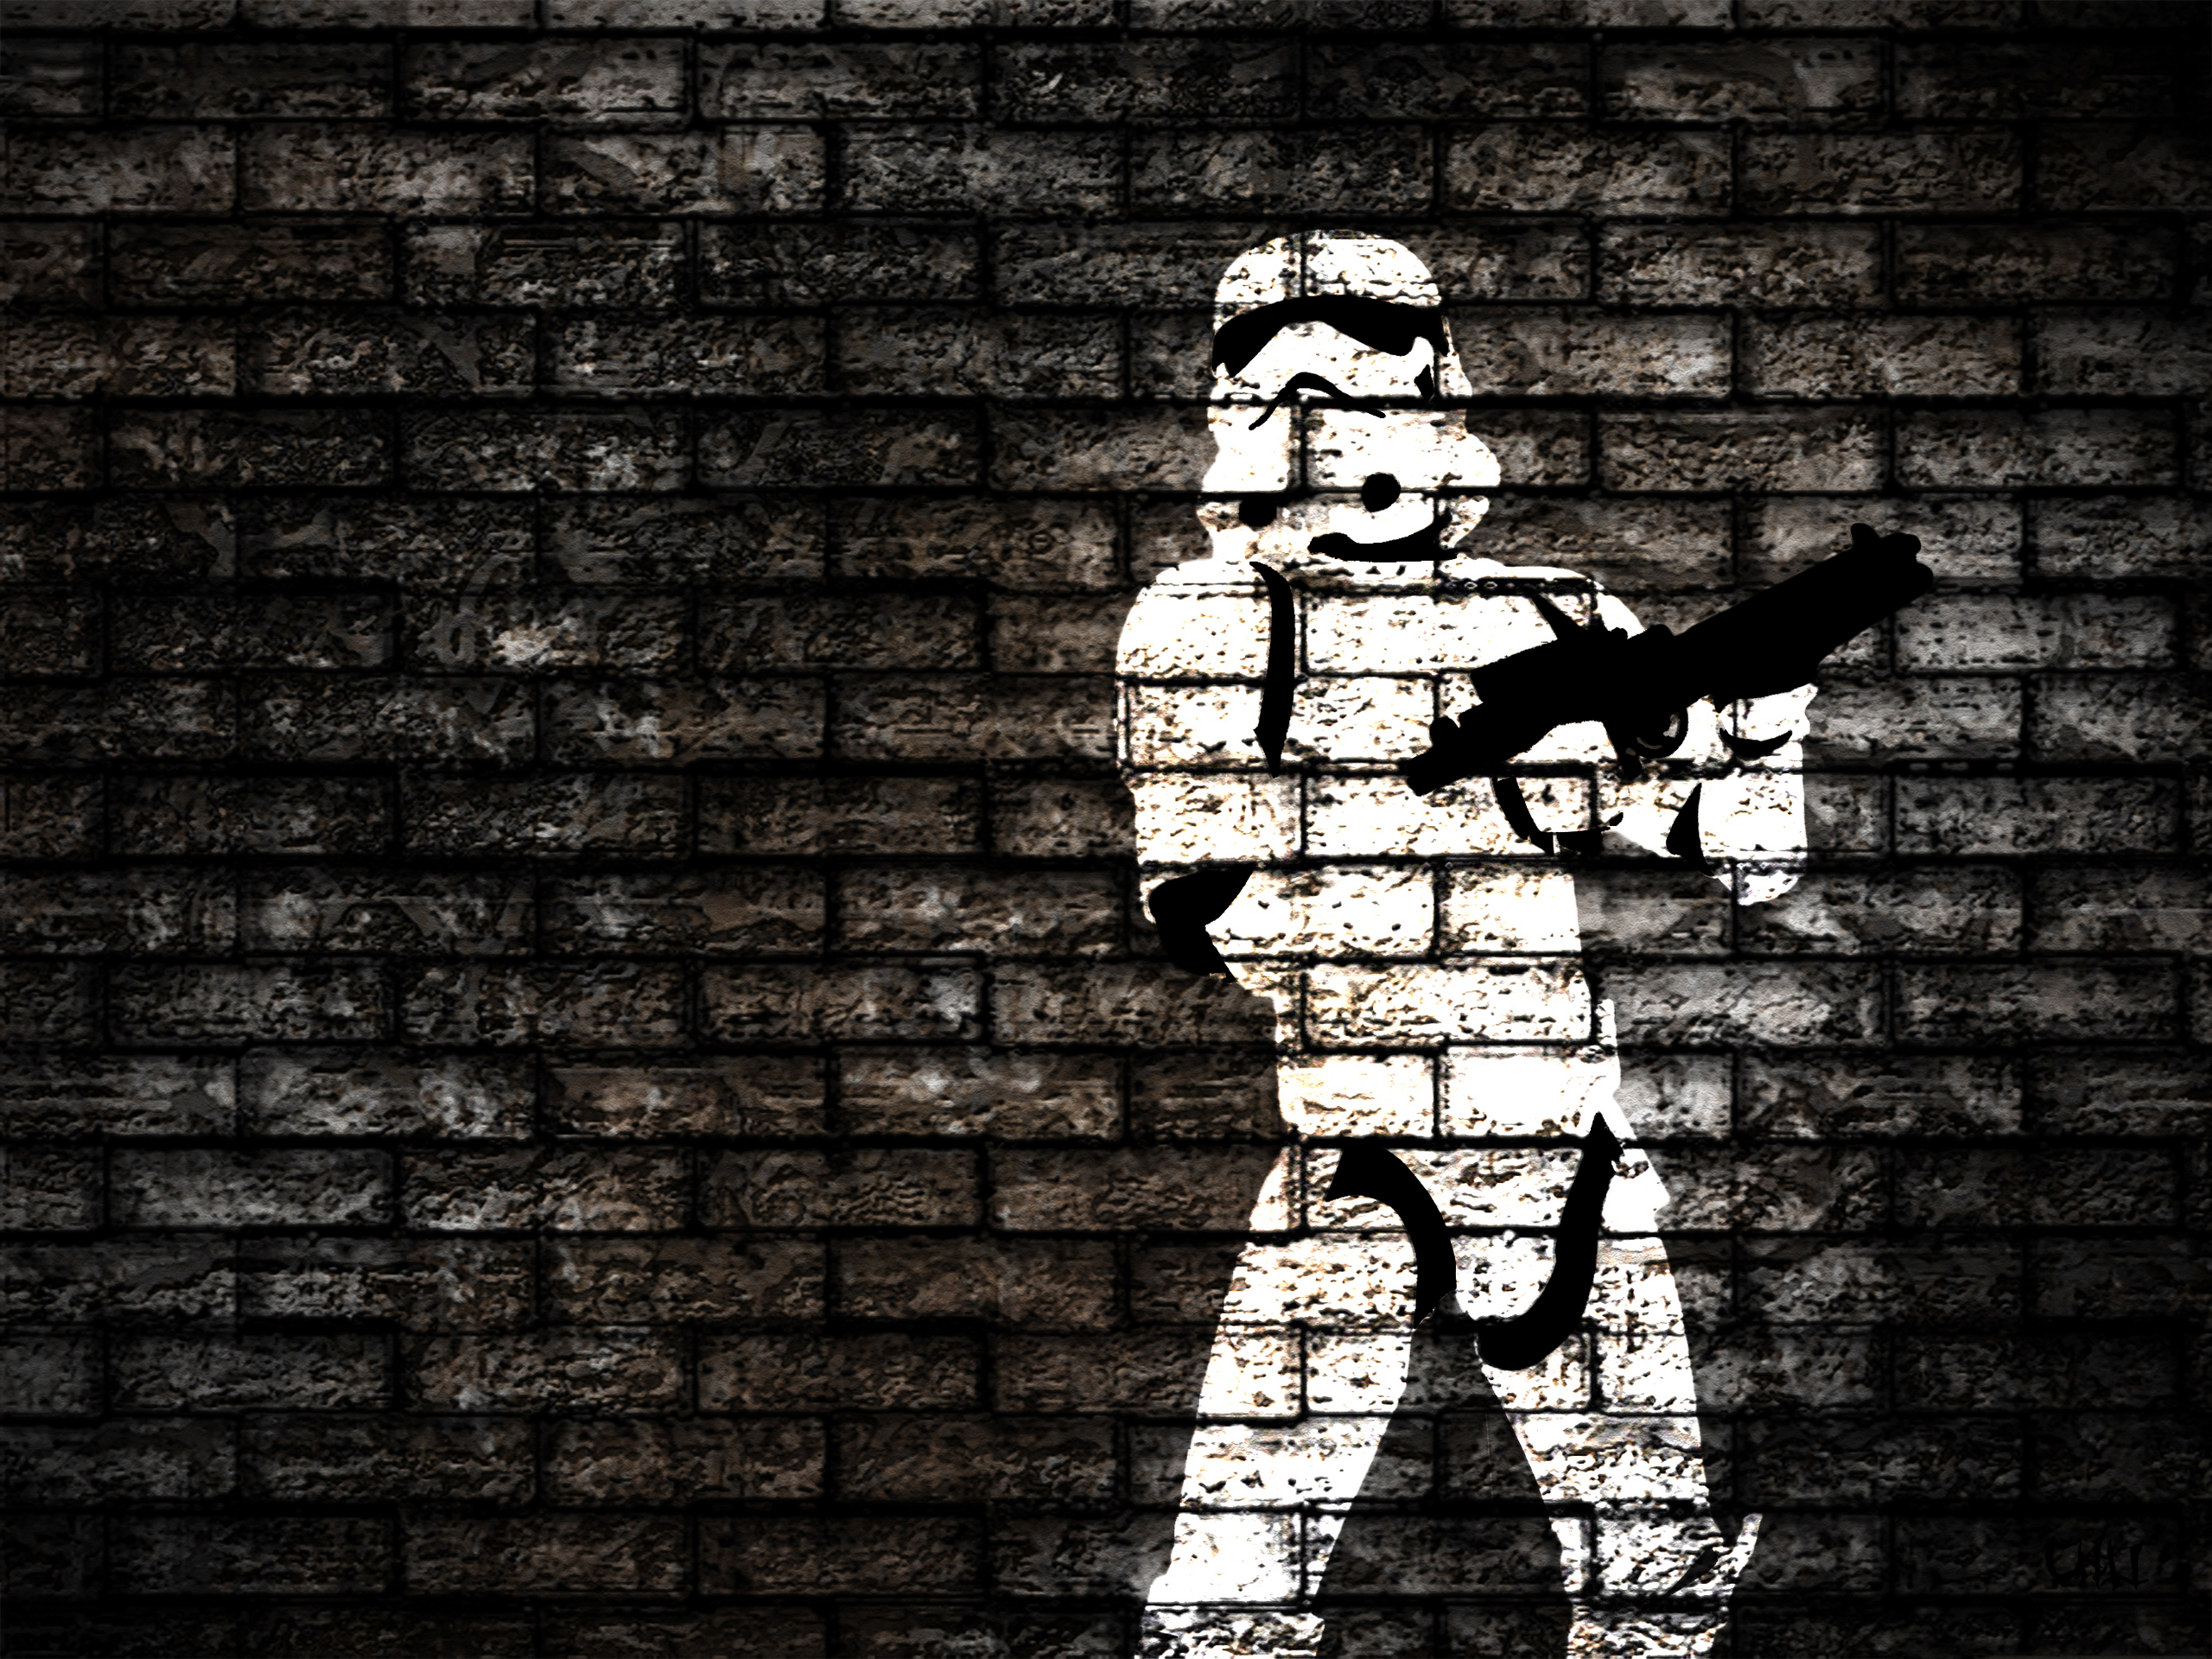 stormtrooper wallpaper star wars - photo #11